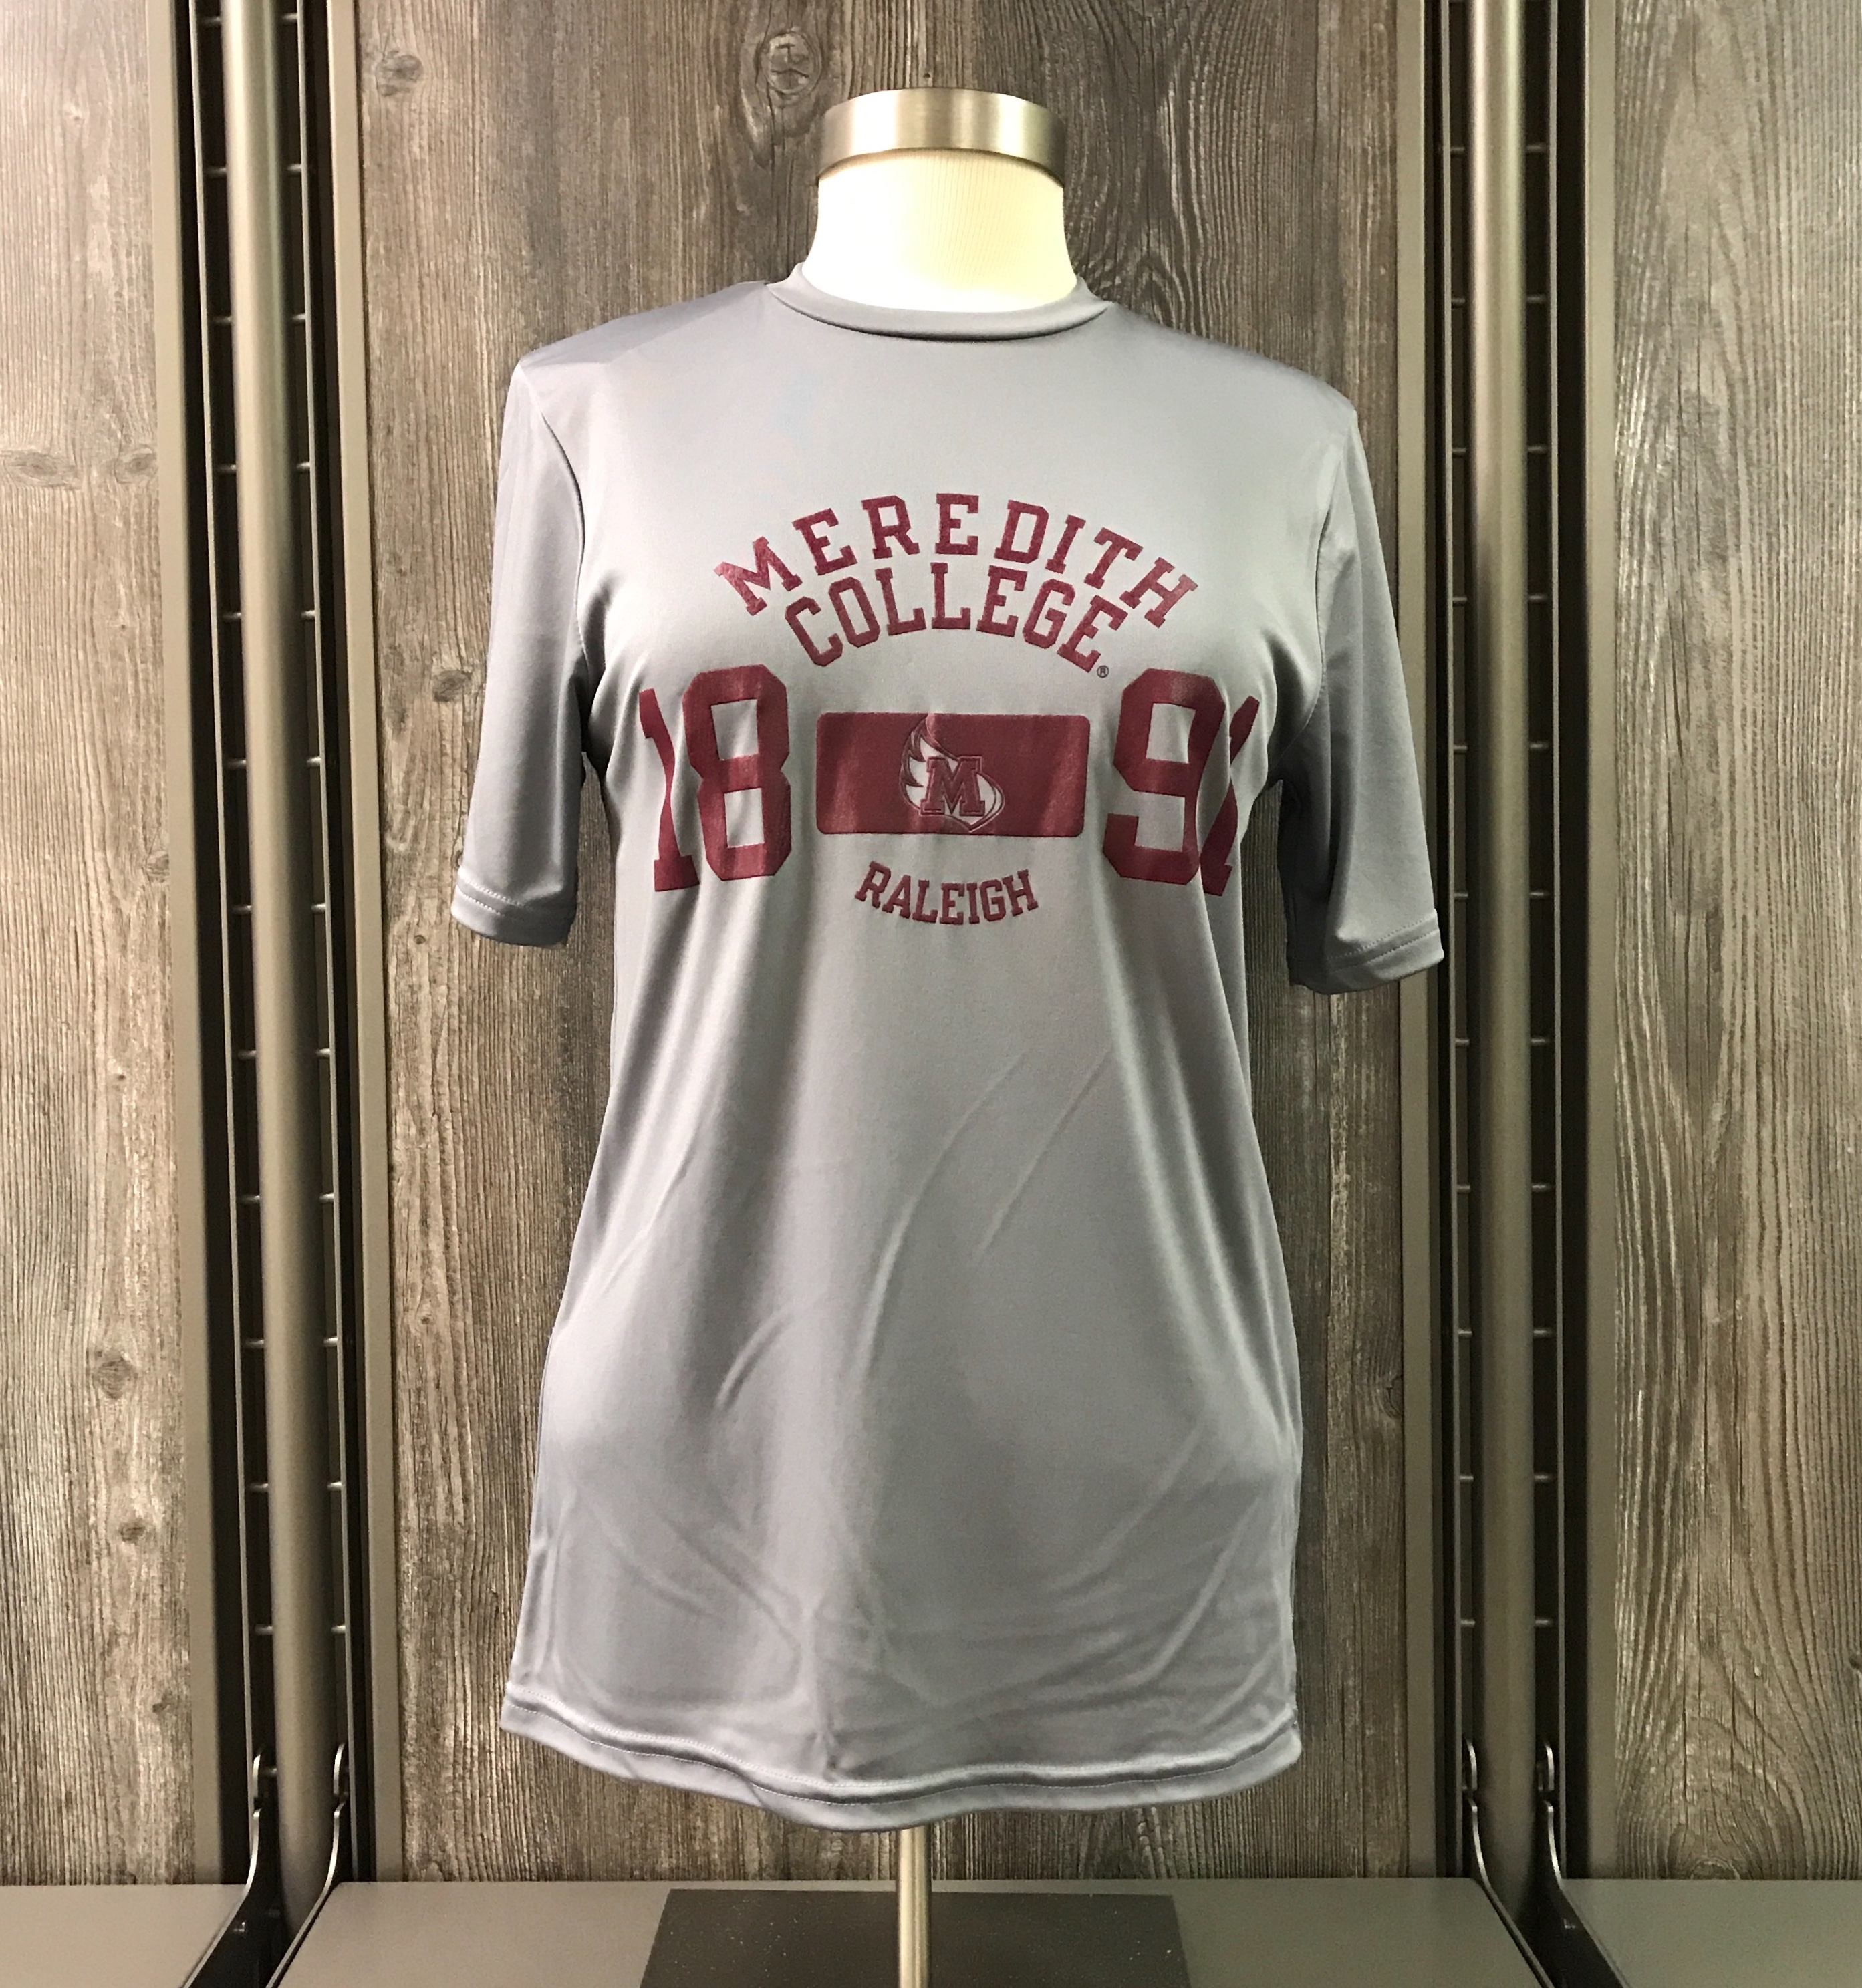 Image for the Men's Short Sleeve Performance Tee MC 1891 Raleigh Russell product